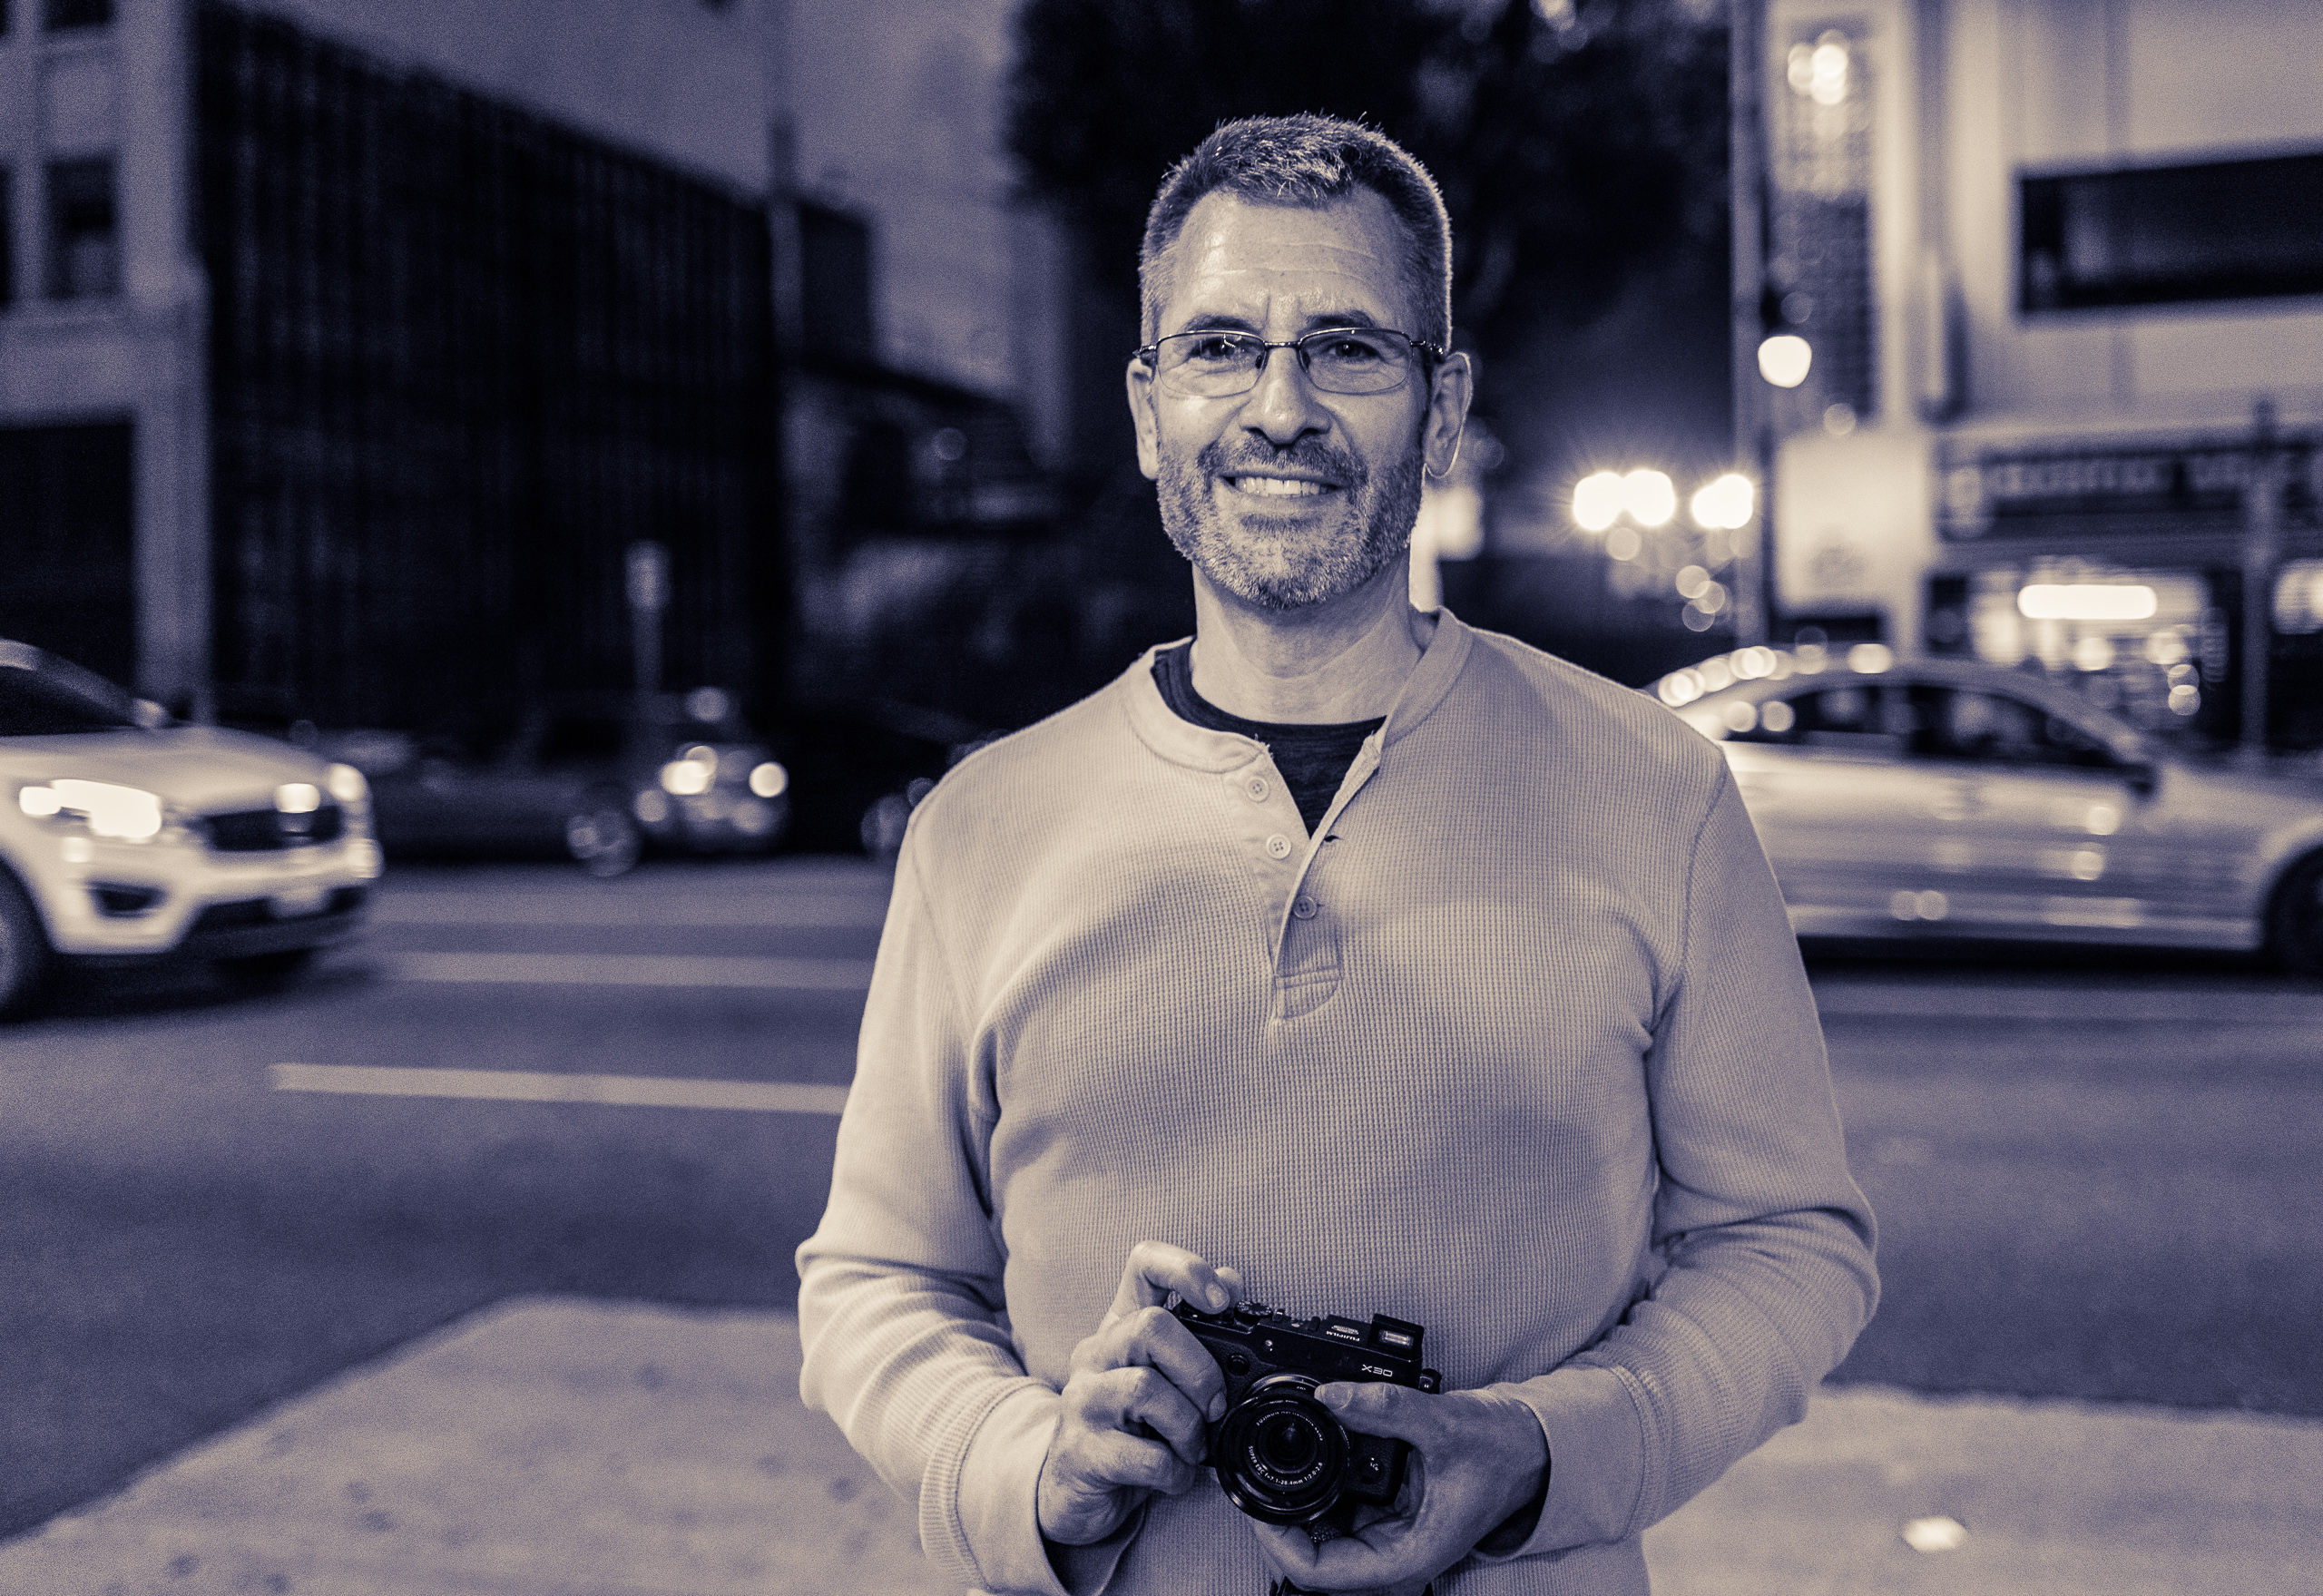 Rick Sanborn and his mirrorless Fuji camera on Hollywood Blvd.